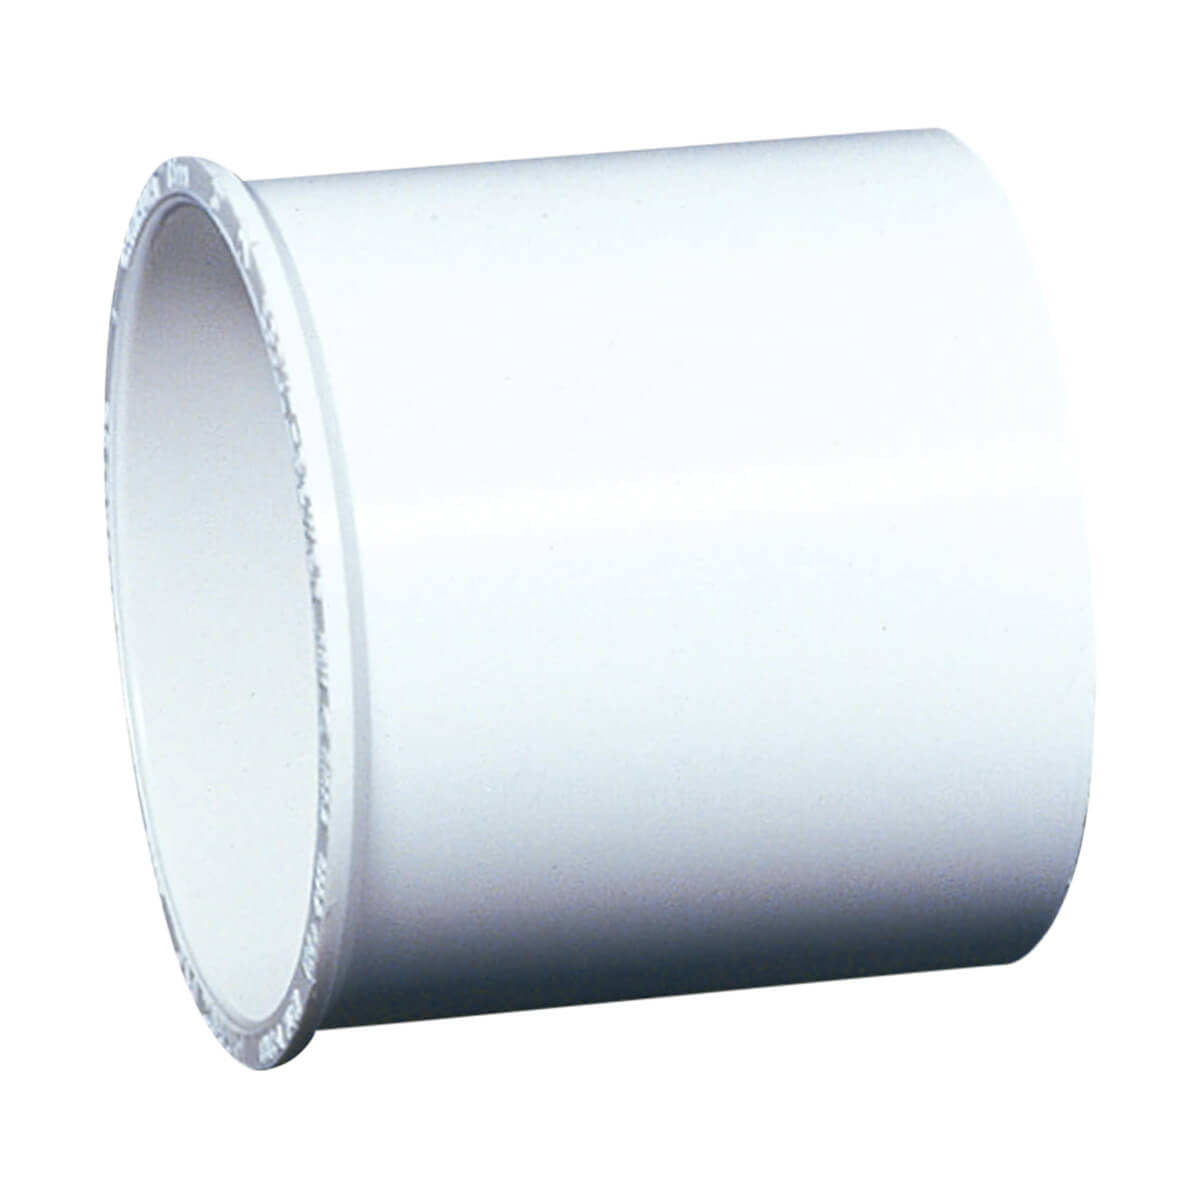 PVC-BDS Coupling with Pipe Stop - Hub - 3-in